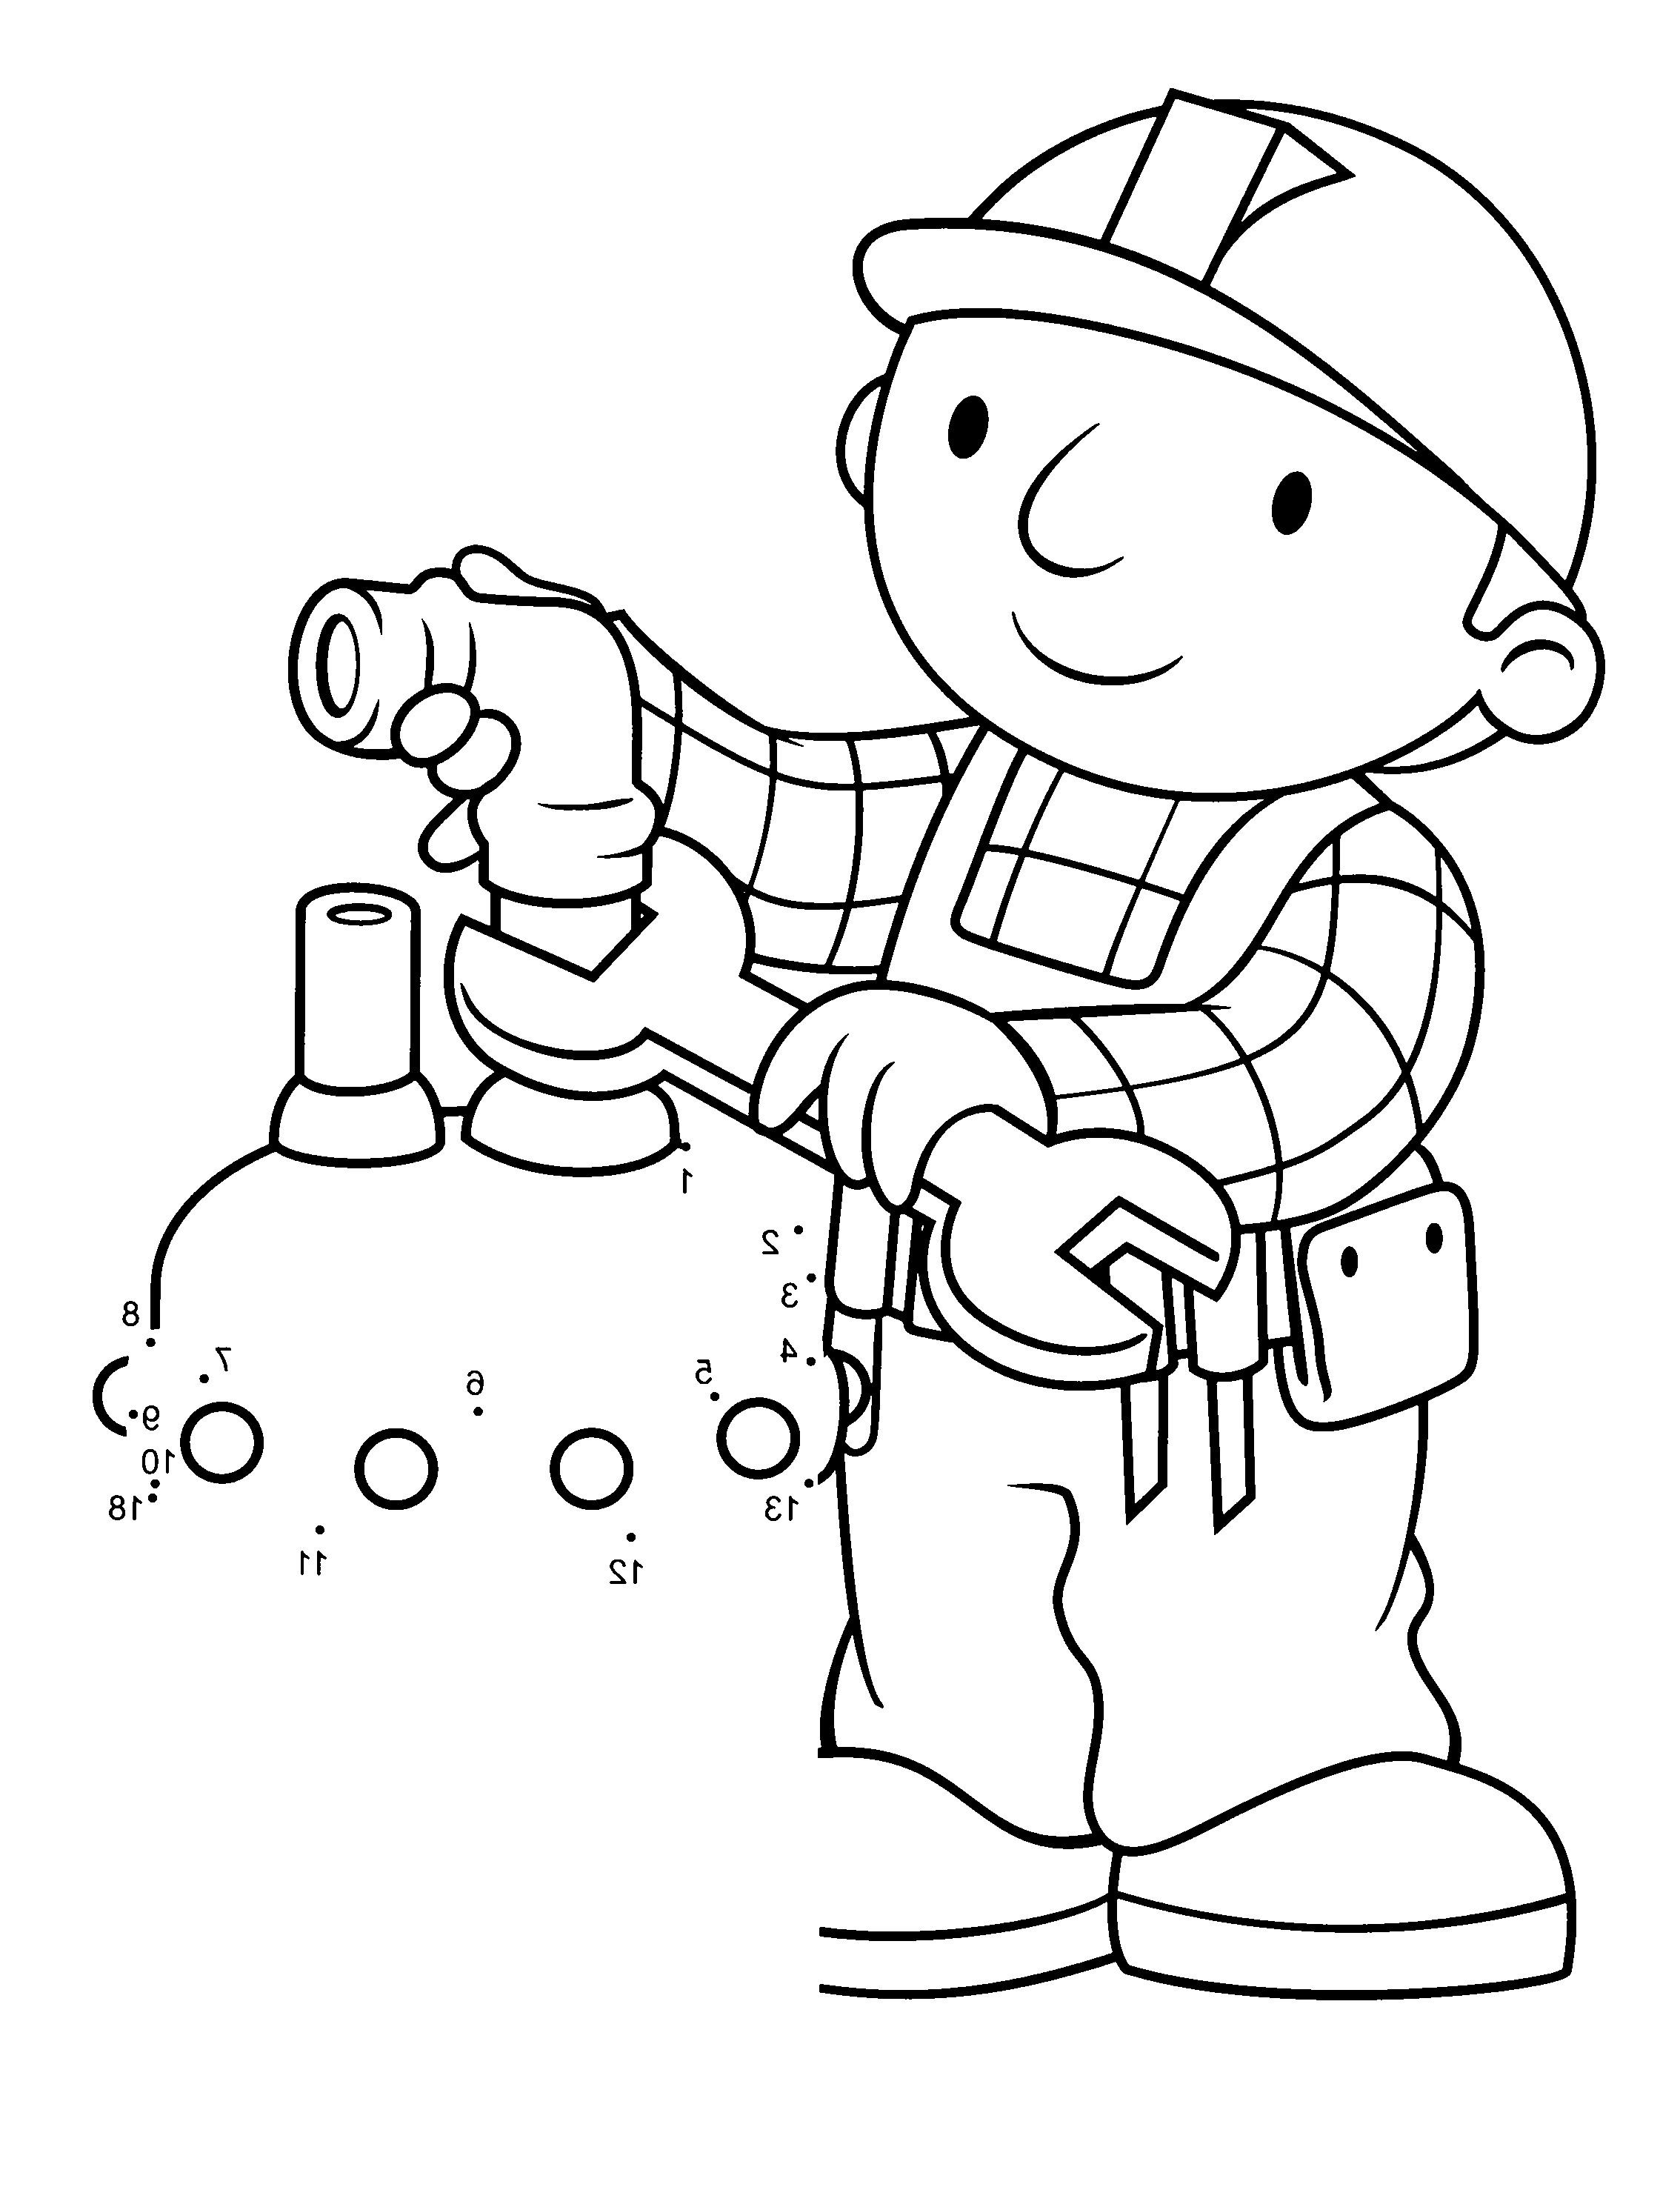 bob the builder fix the tap water coloring for kids - Water Coloring Book